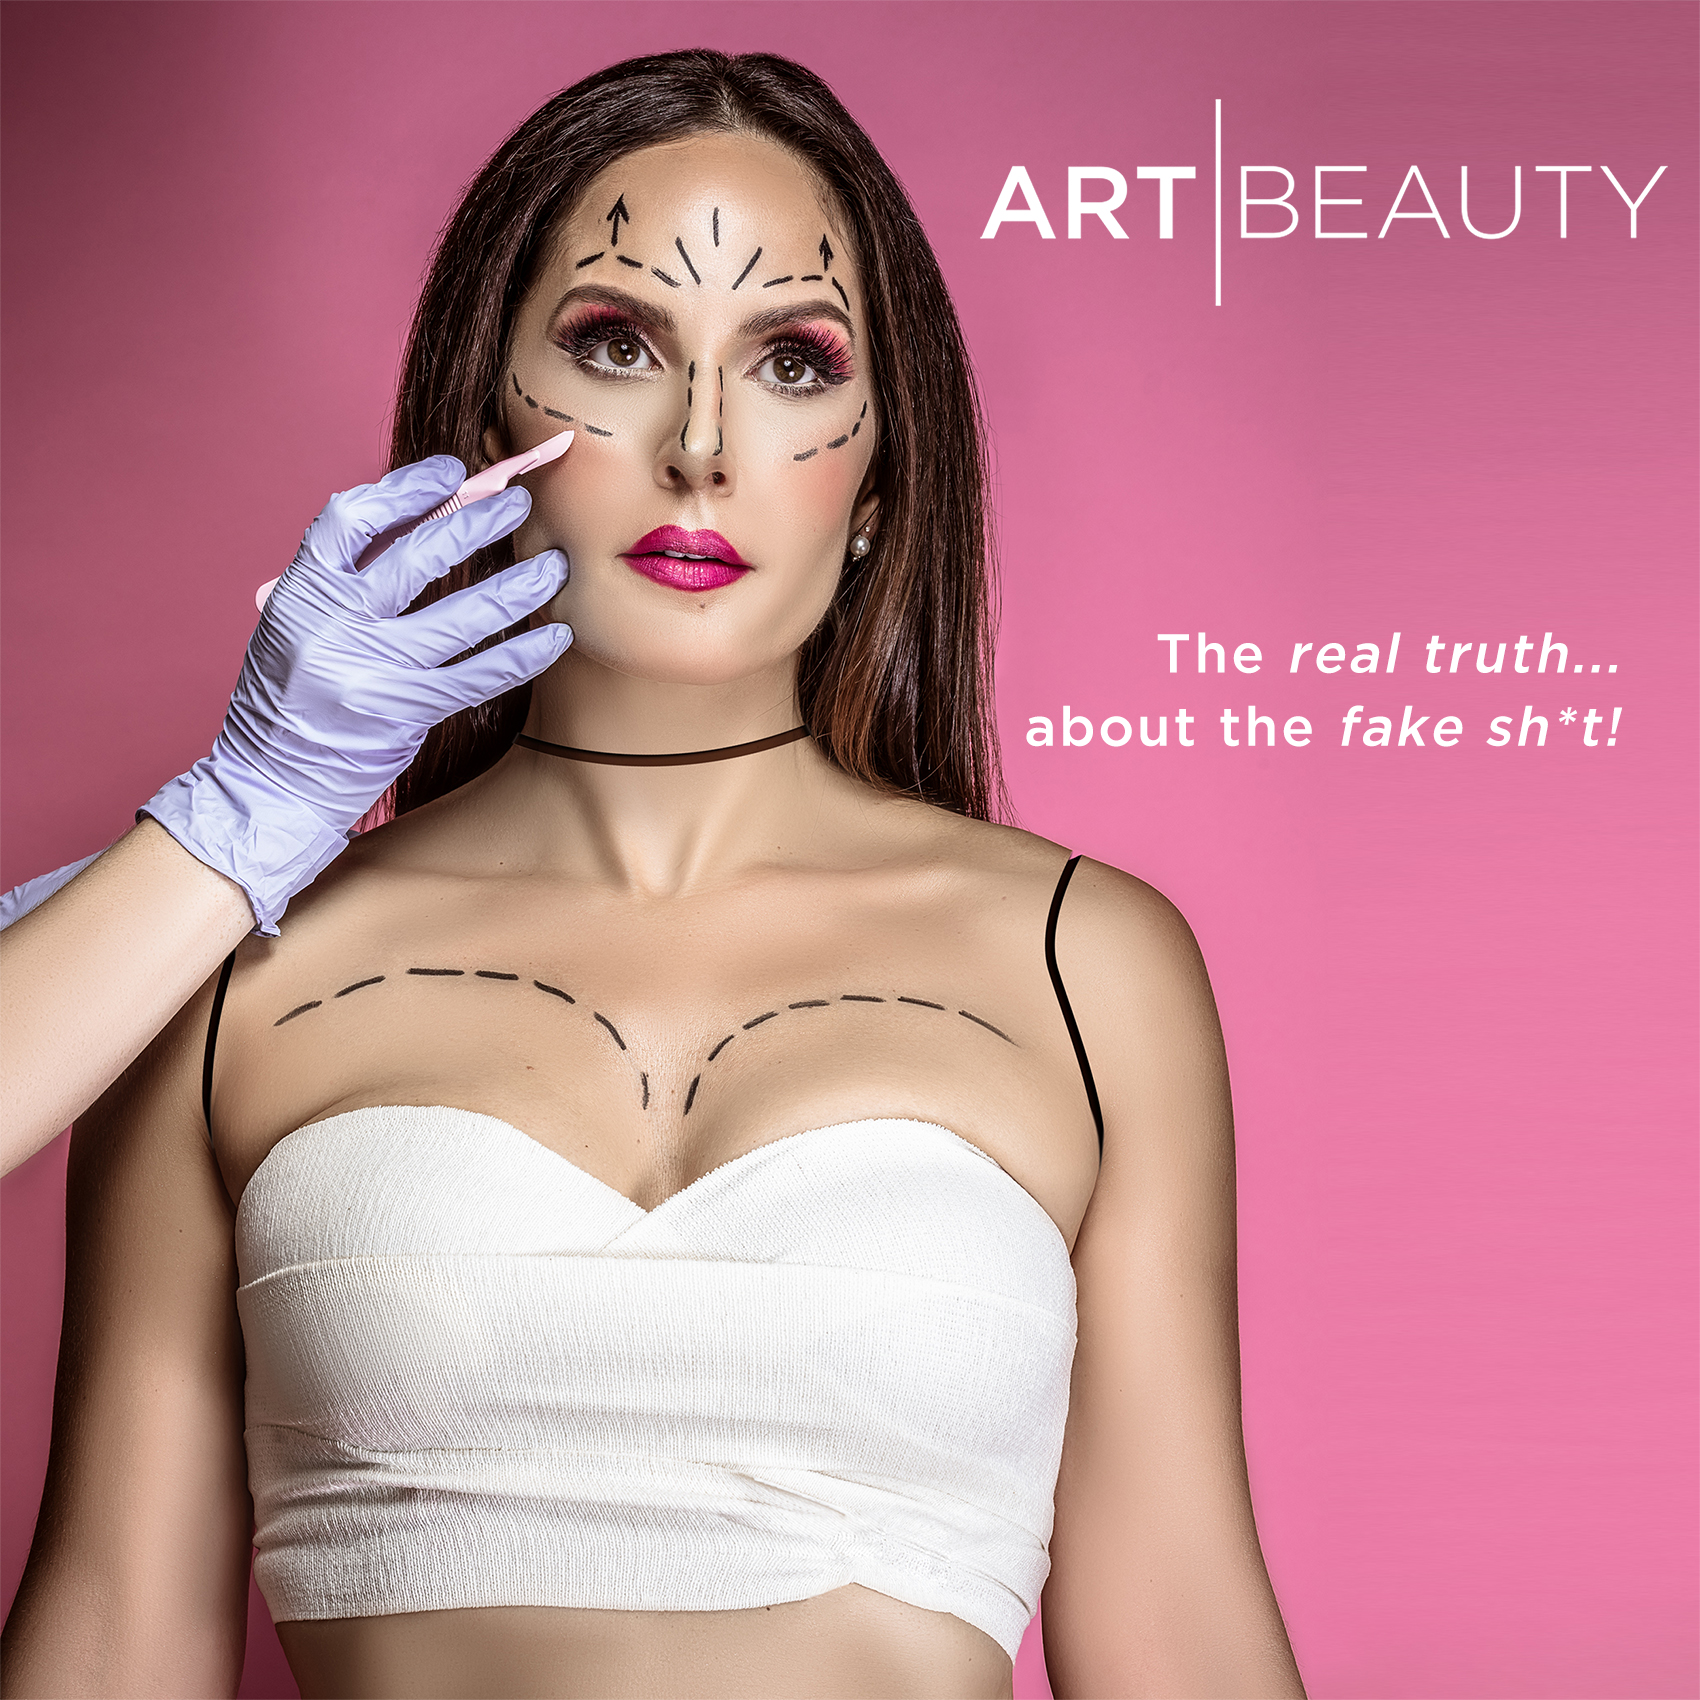 A highlight from Beauty Evolution: Body Size, Ingredients, Artificial Intelligence (and other Badass Beauty Advice to Throw Out at the Next Party)